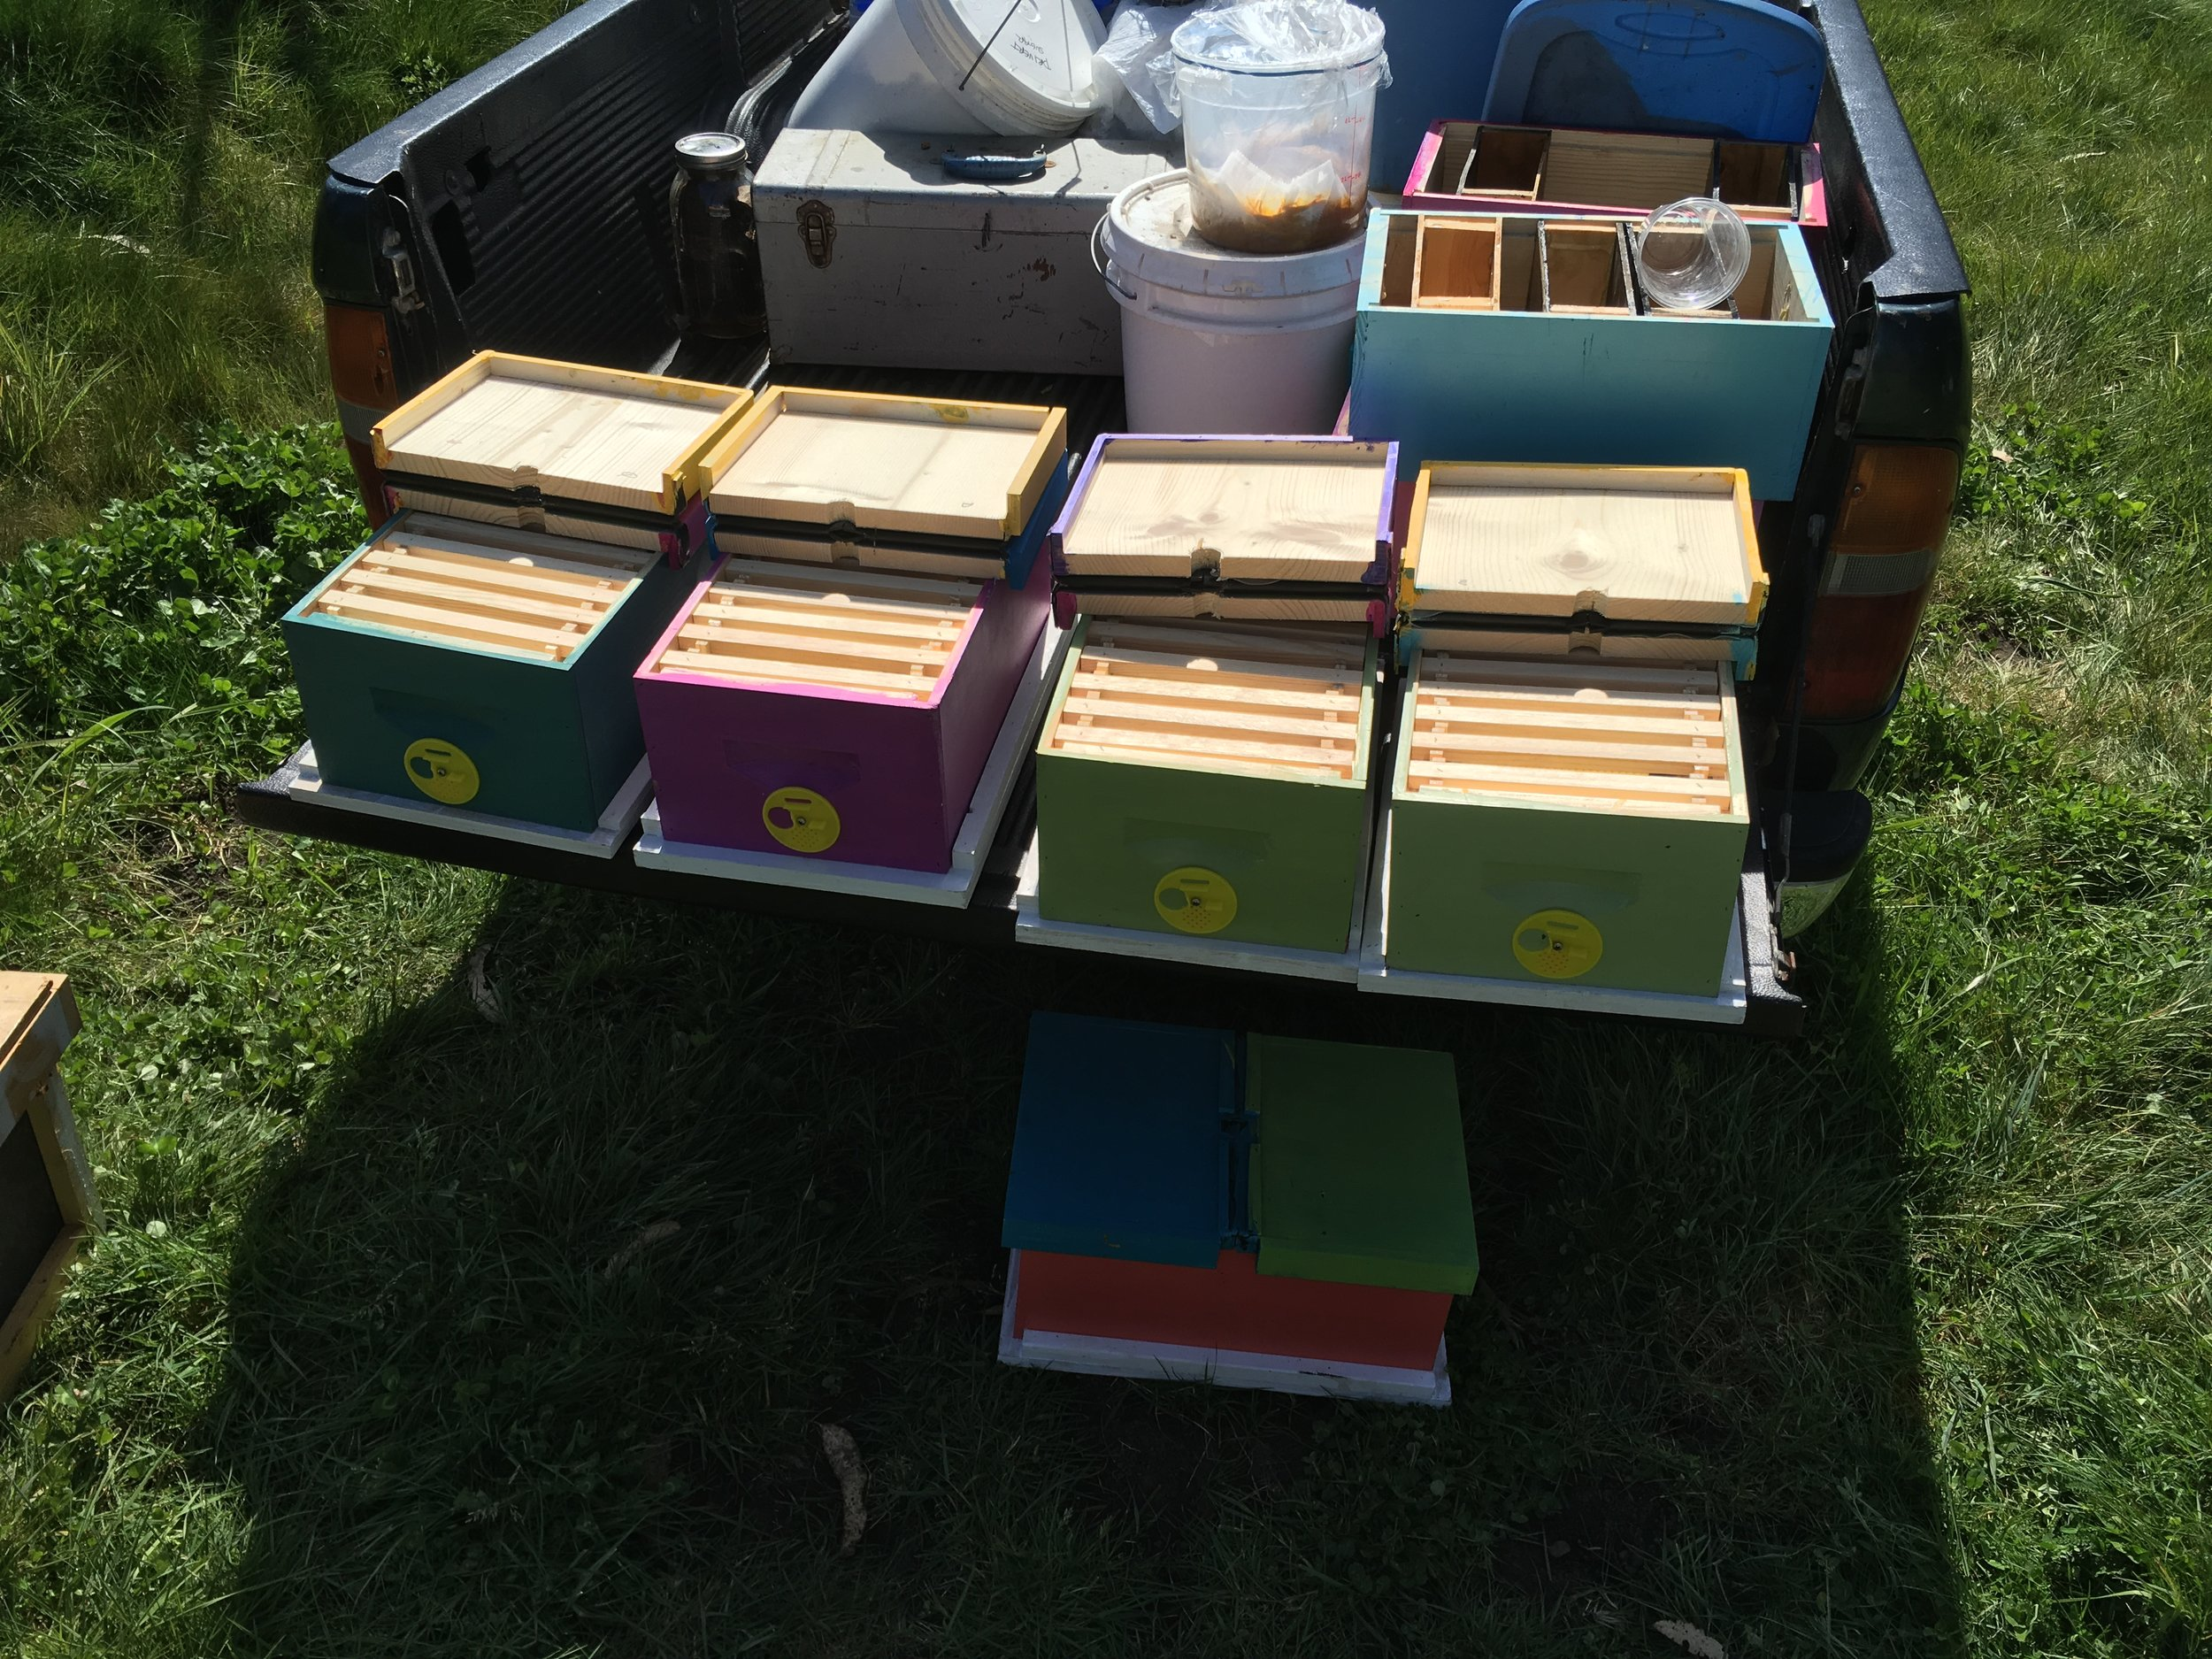 Hinged lids and center dividers so that each box gets two nucs with their own queen.